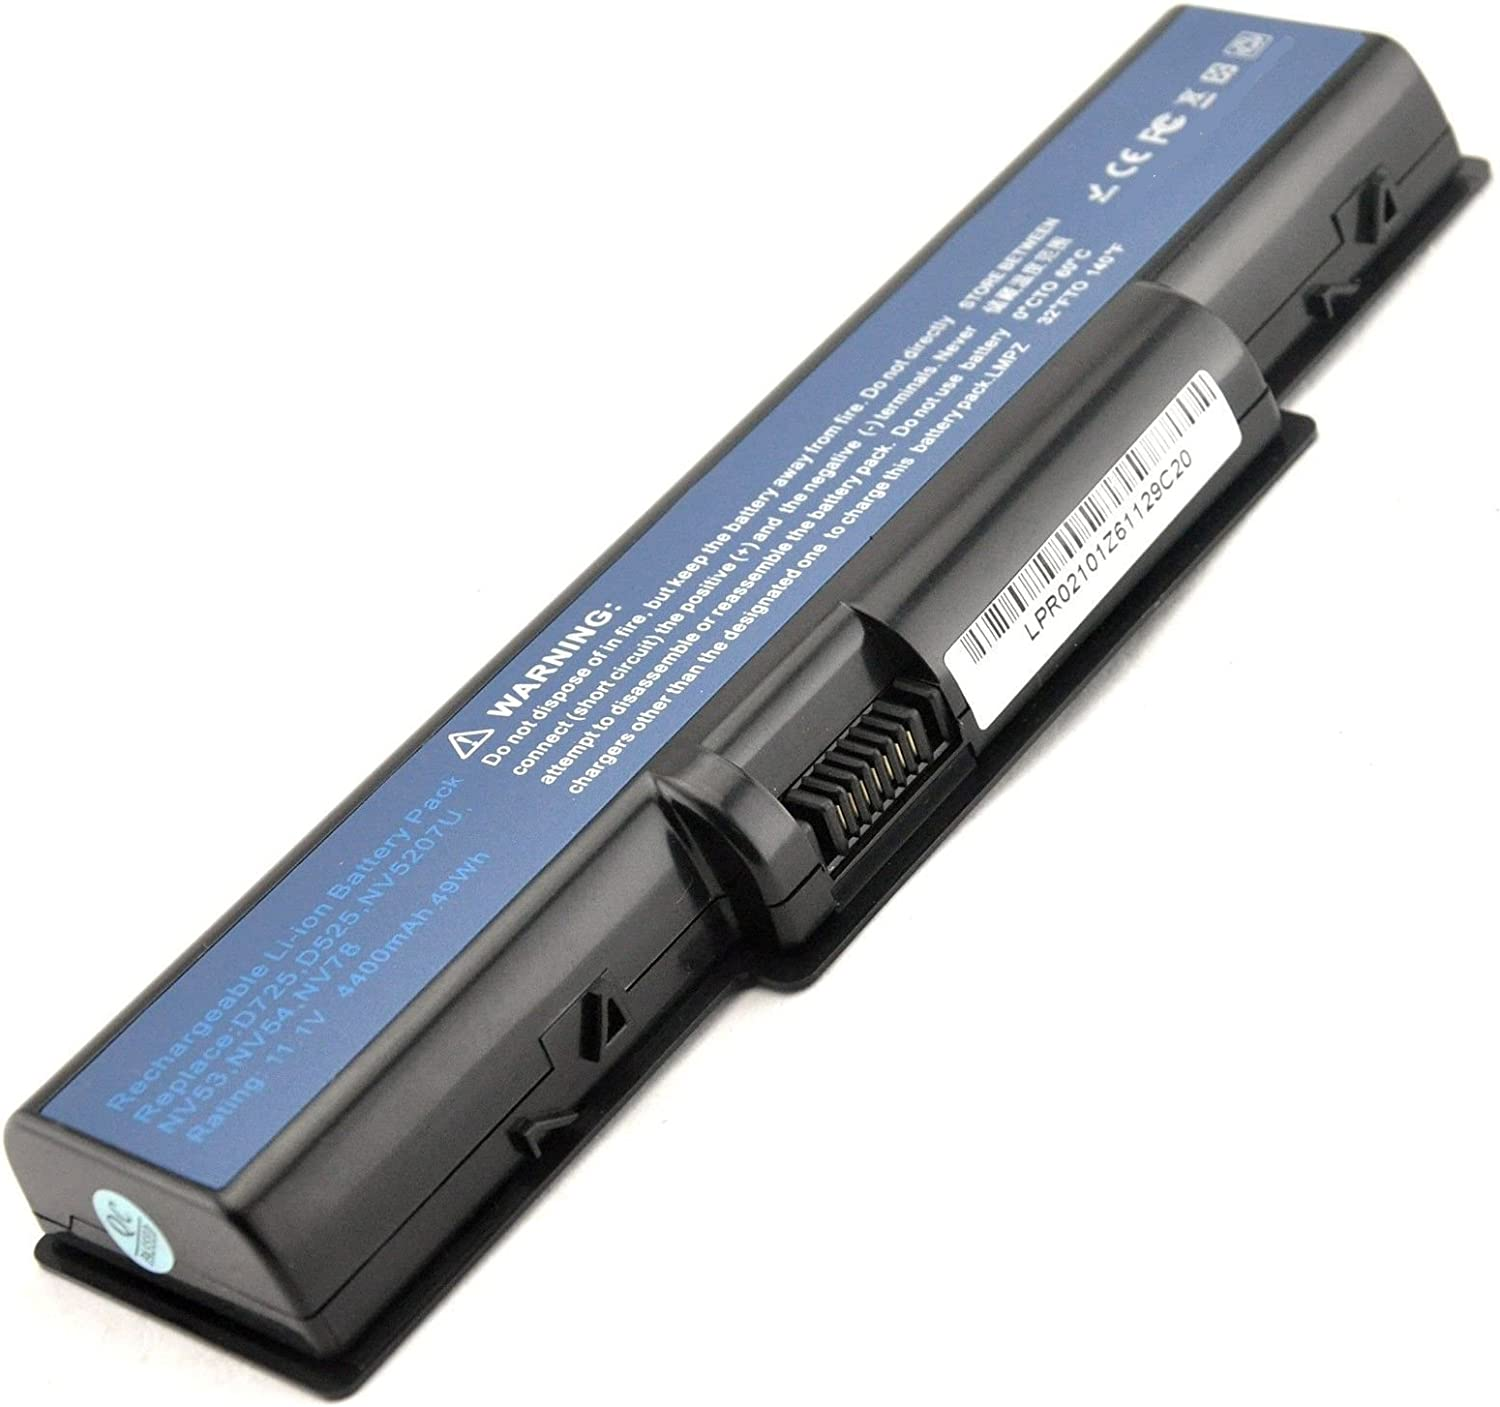 Powerforlaptop Laptop/Notebook Replacement Battery Compatible with Acer Aspire 4732Z 4732 5332 5334 5516 5517 5532 5732Z 5732 5732G 5732ZG 5734Z 7315 7715 7715Z, Emachine D525 D725 Series AS09A31